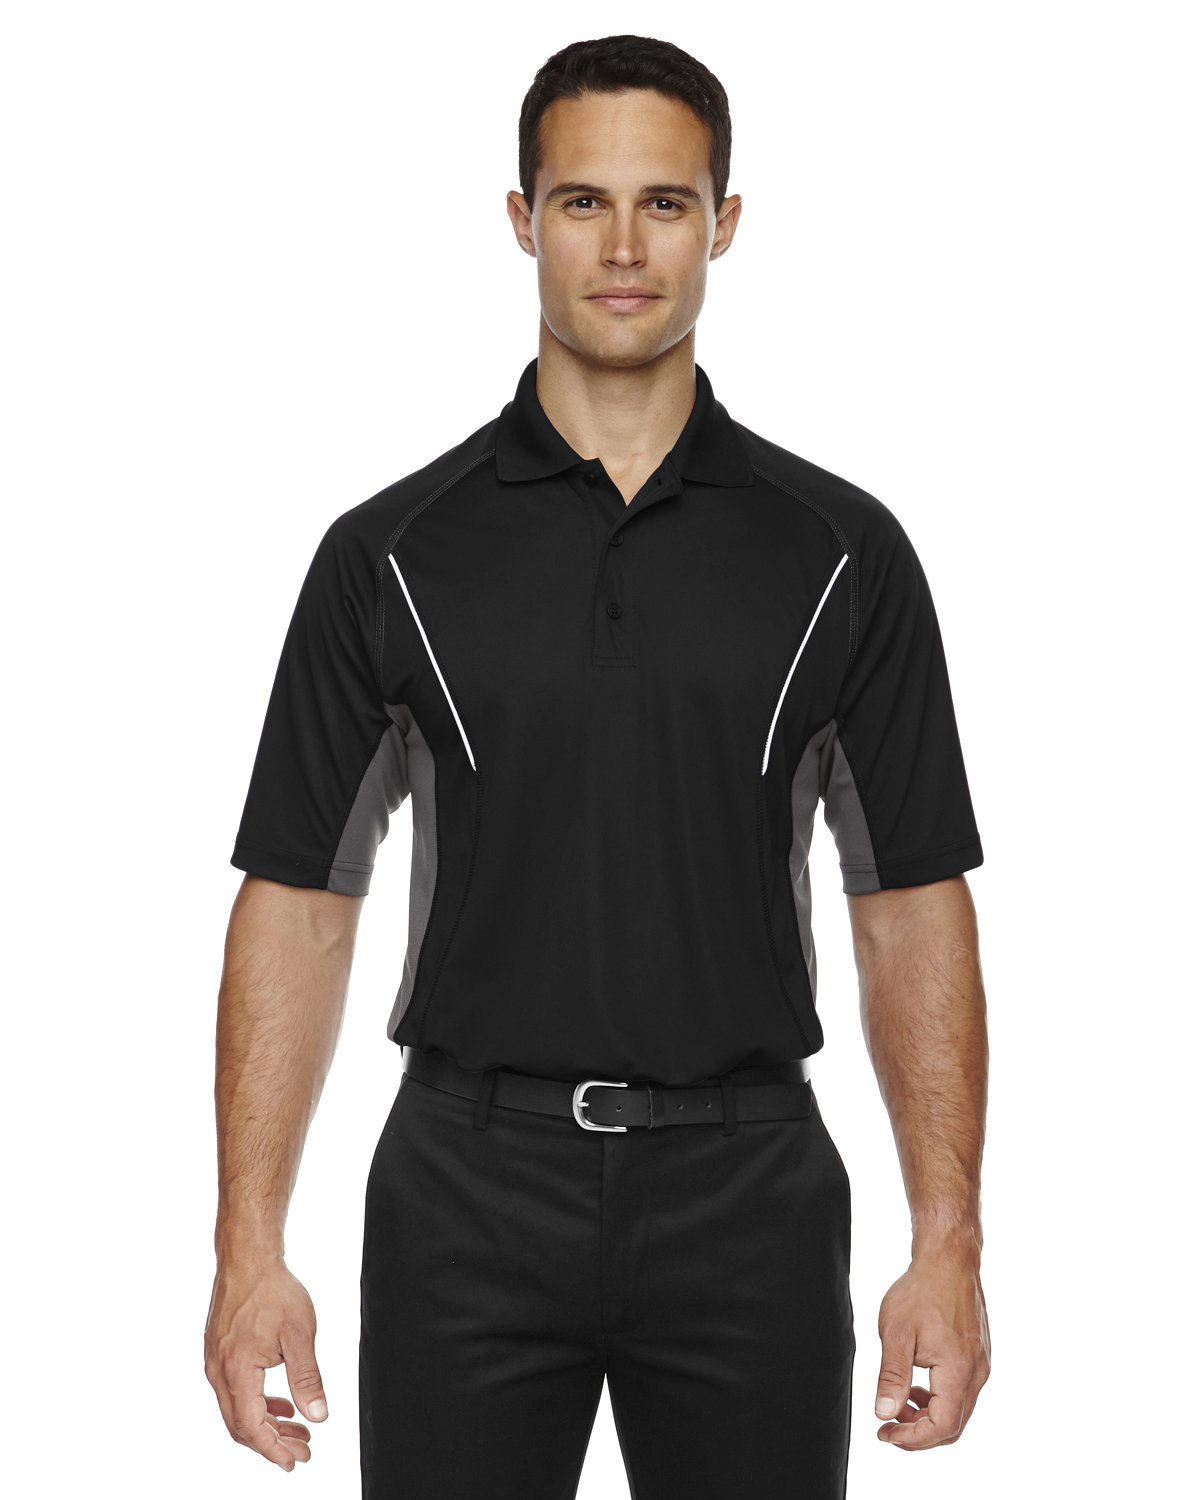 Extreme Men's Eperformance™ Parallel Snag Protection Polo with Piping BLACK